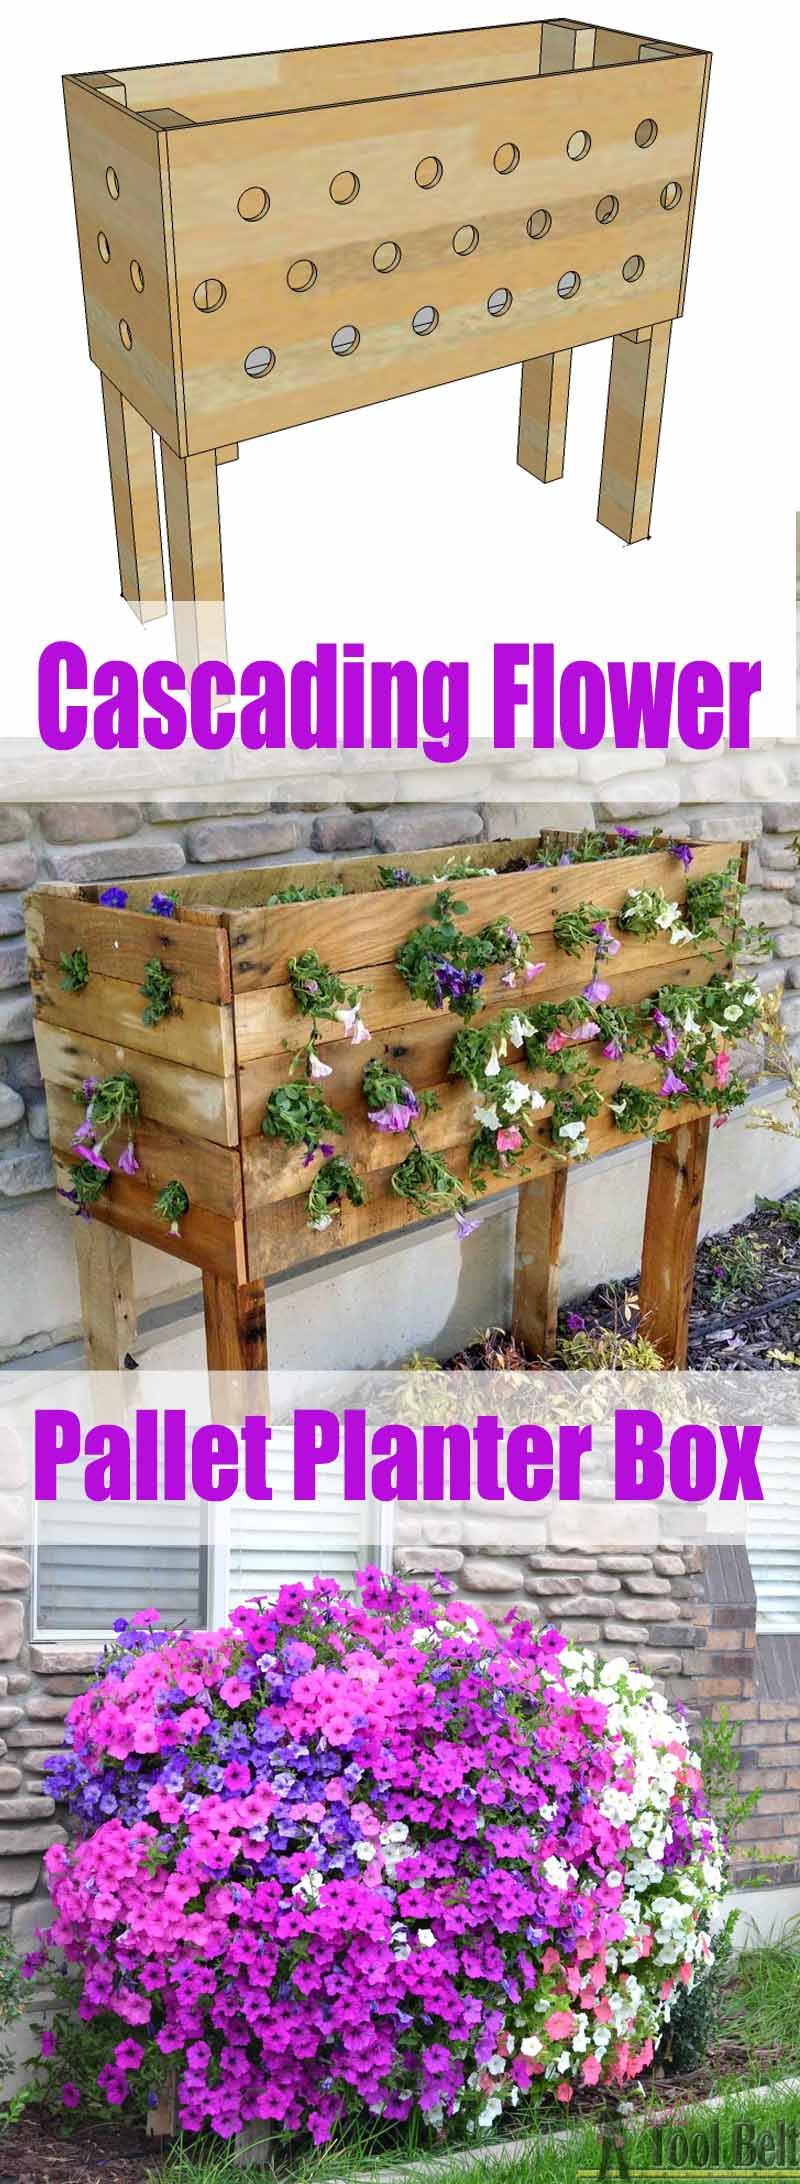 Cascading Flower Wood Pallet Planter Box